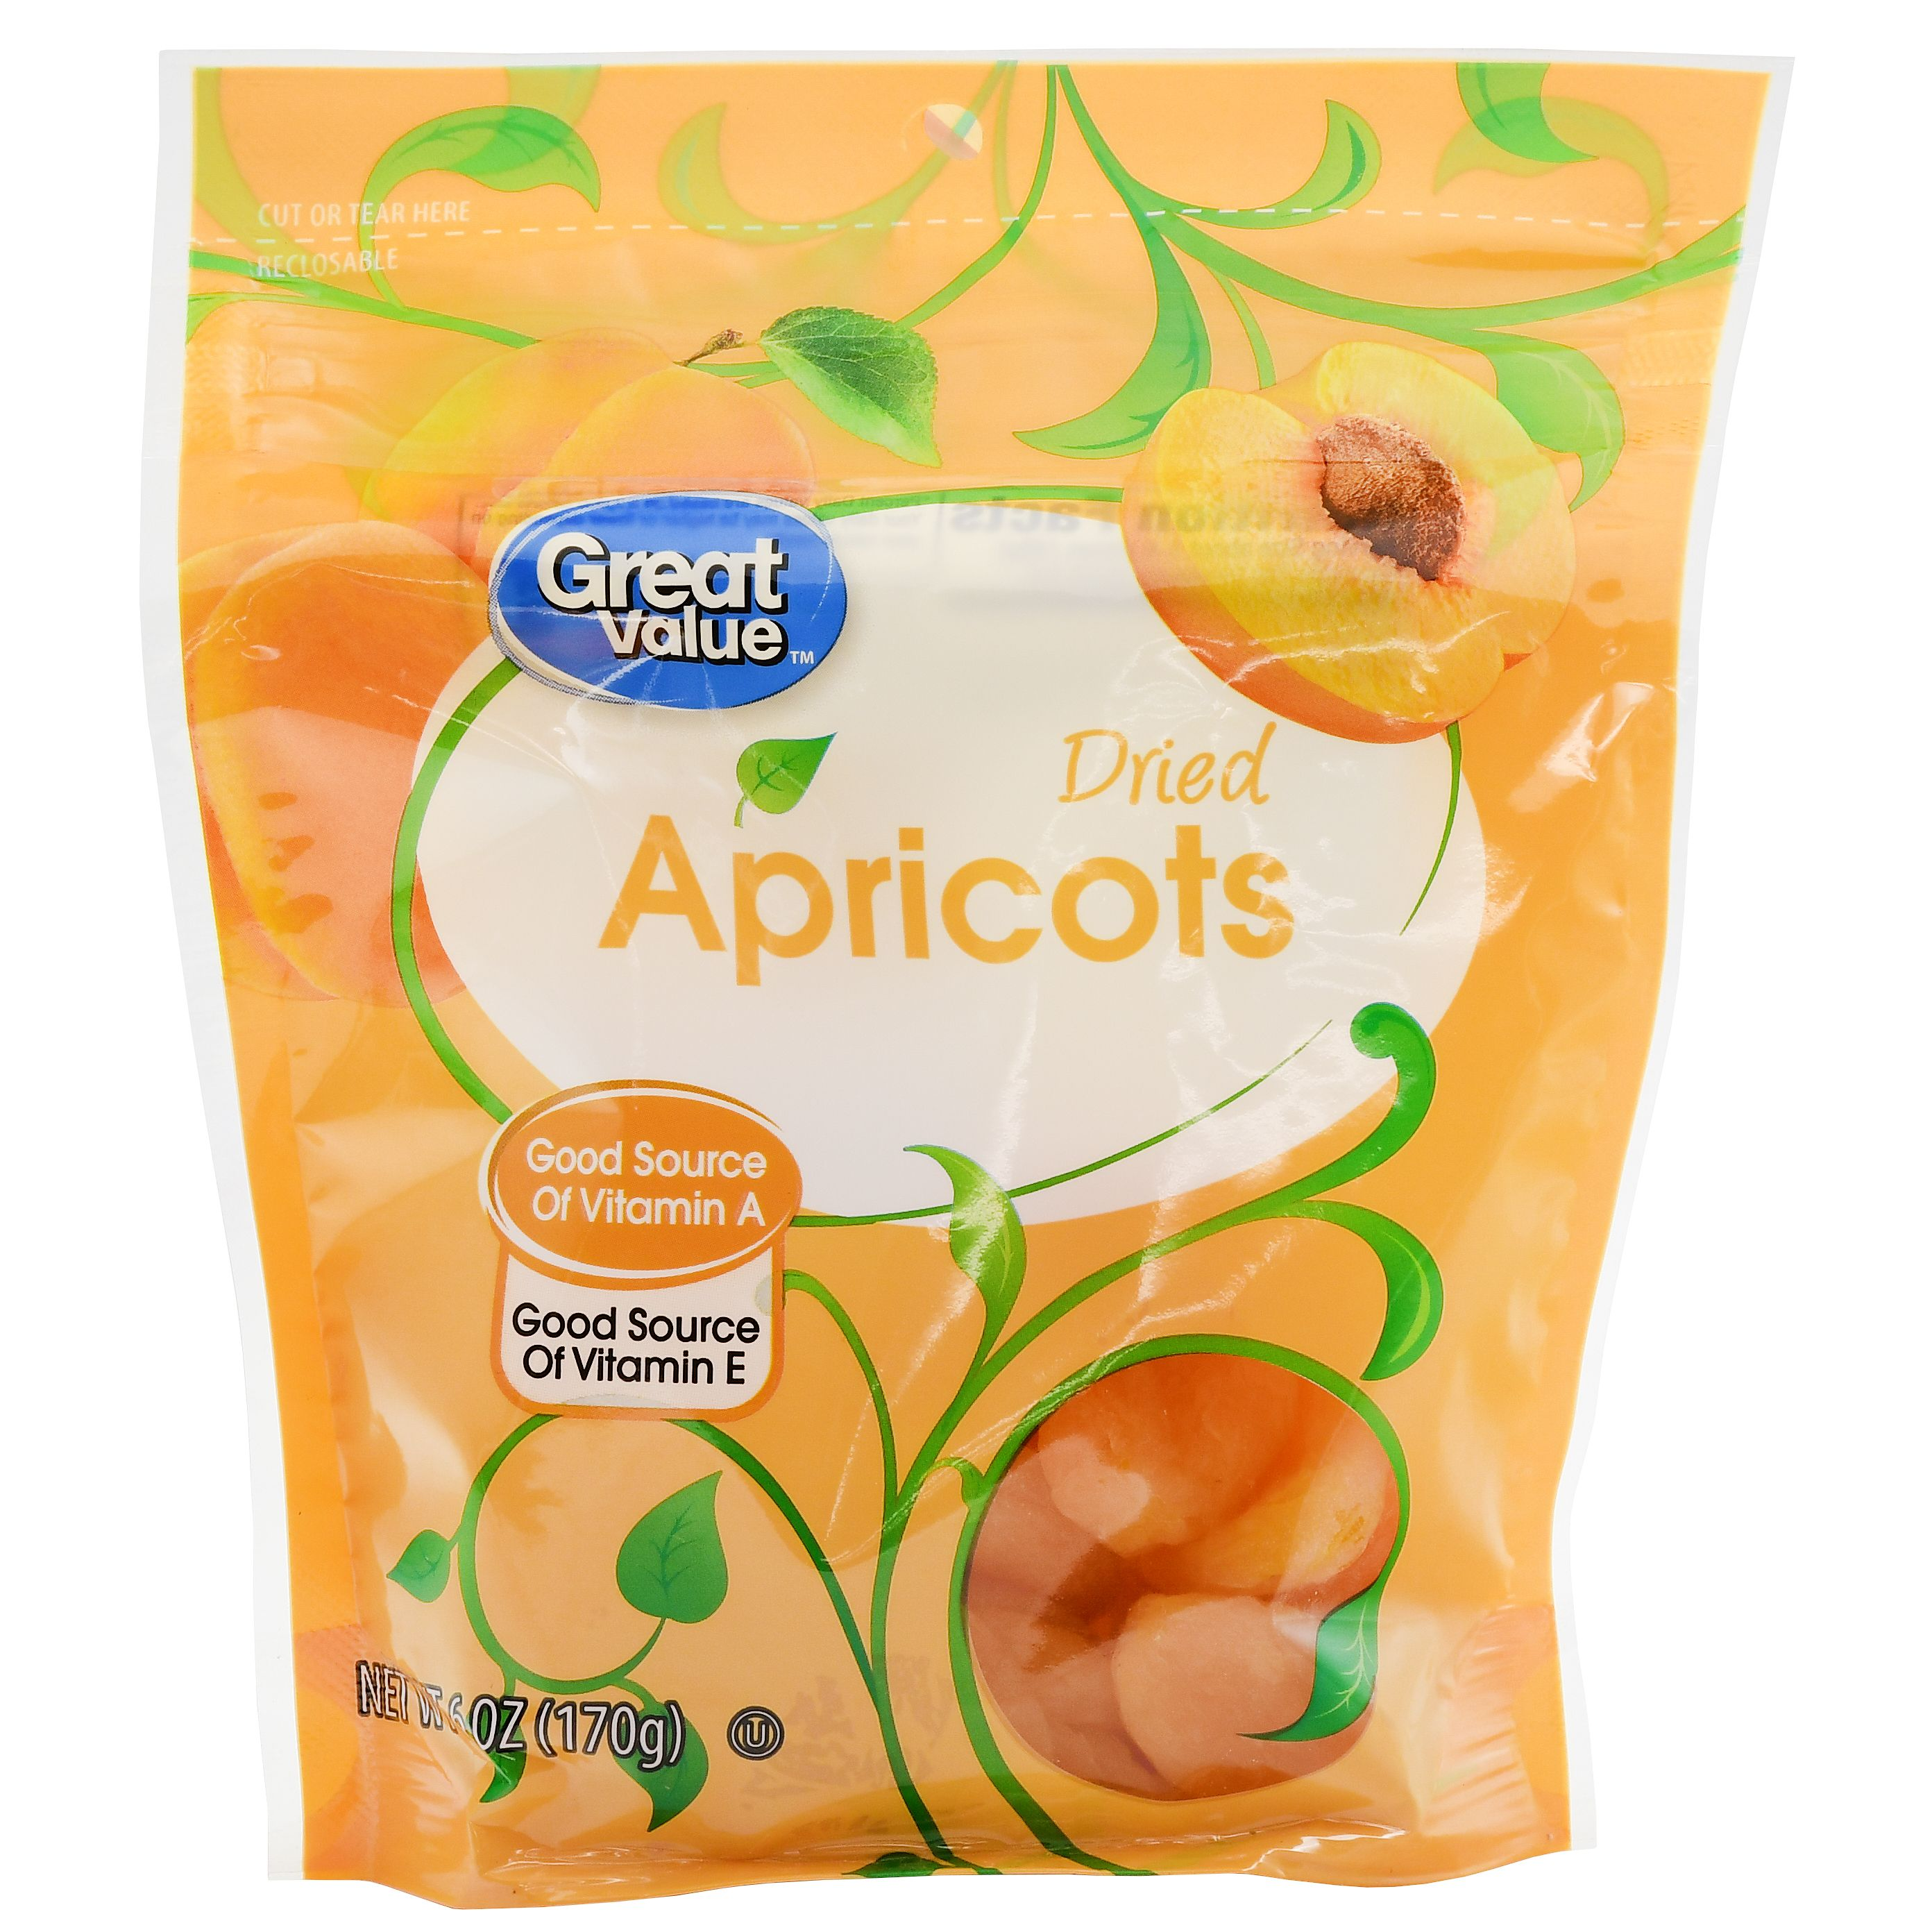 Great Value Dried Apricots, 6 oz